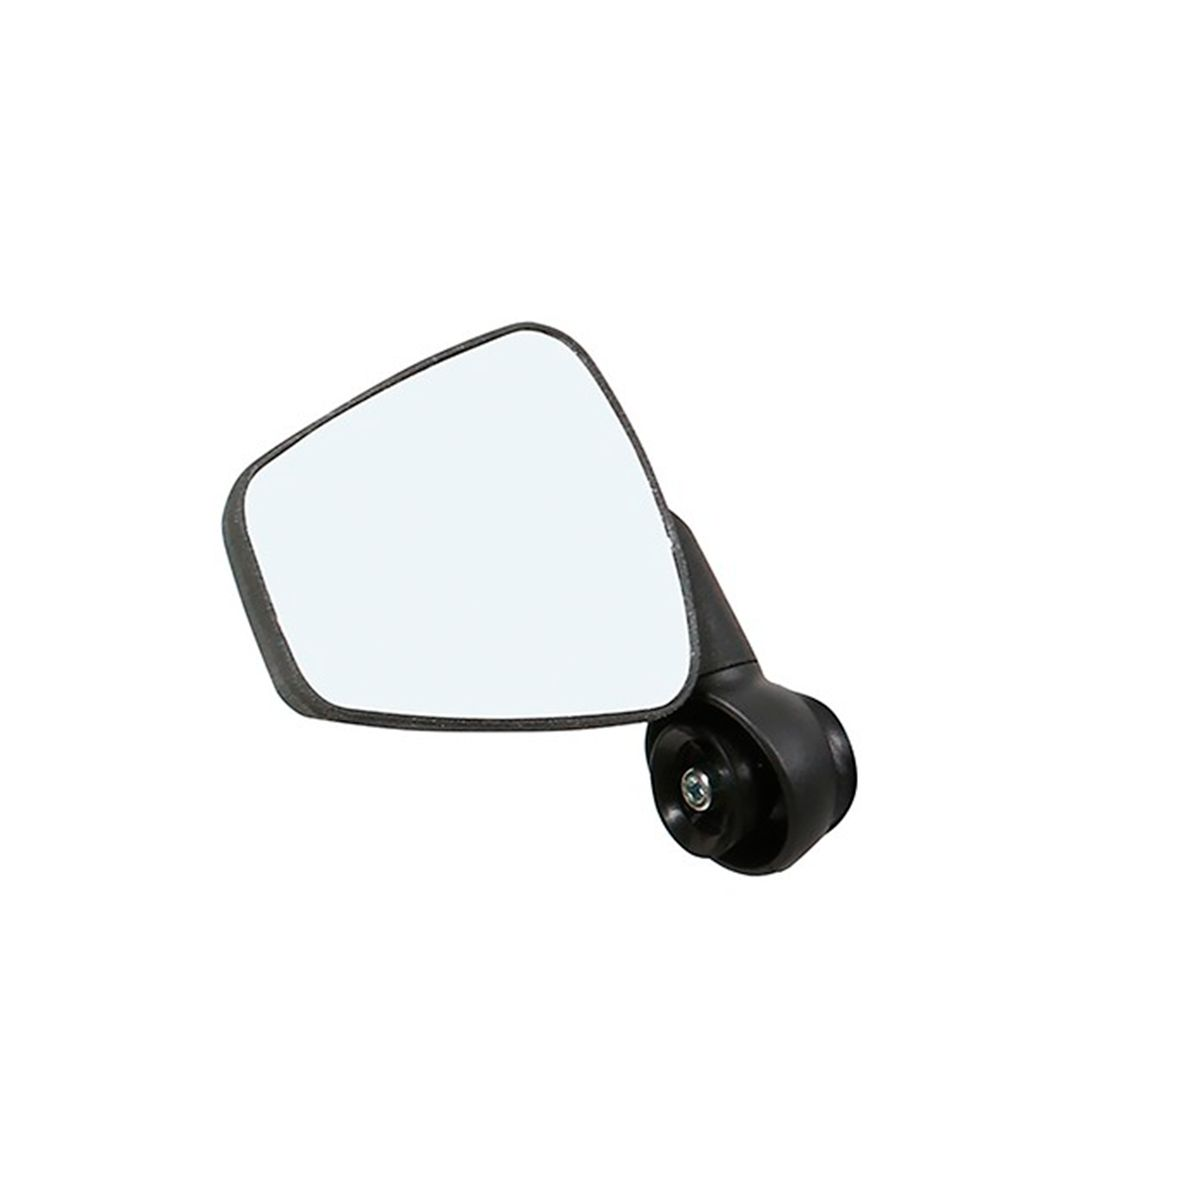 Zefal Dooback 2 folding rear view mirror